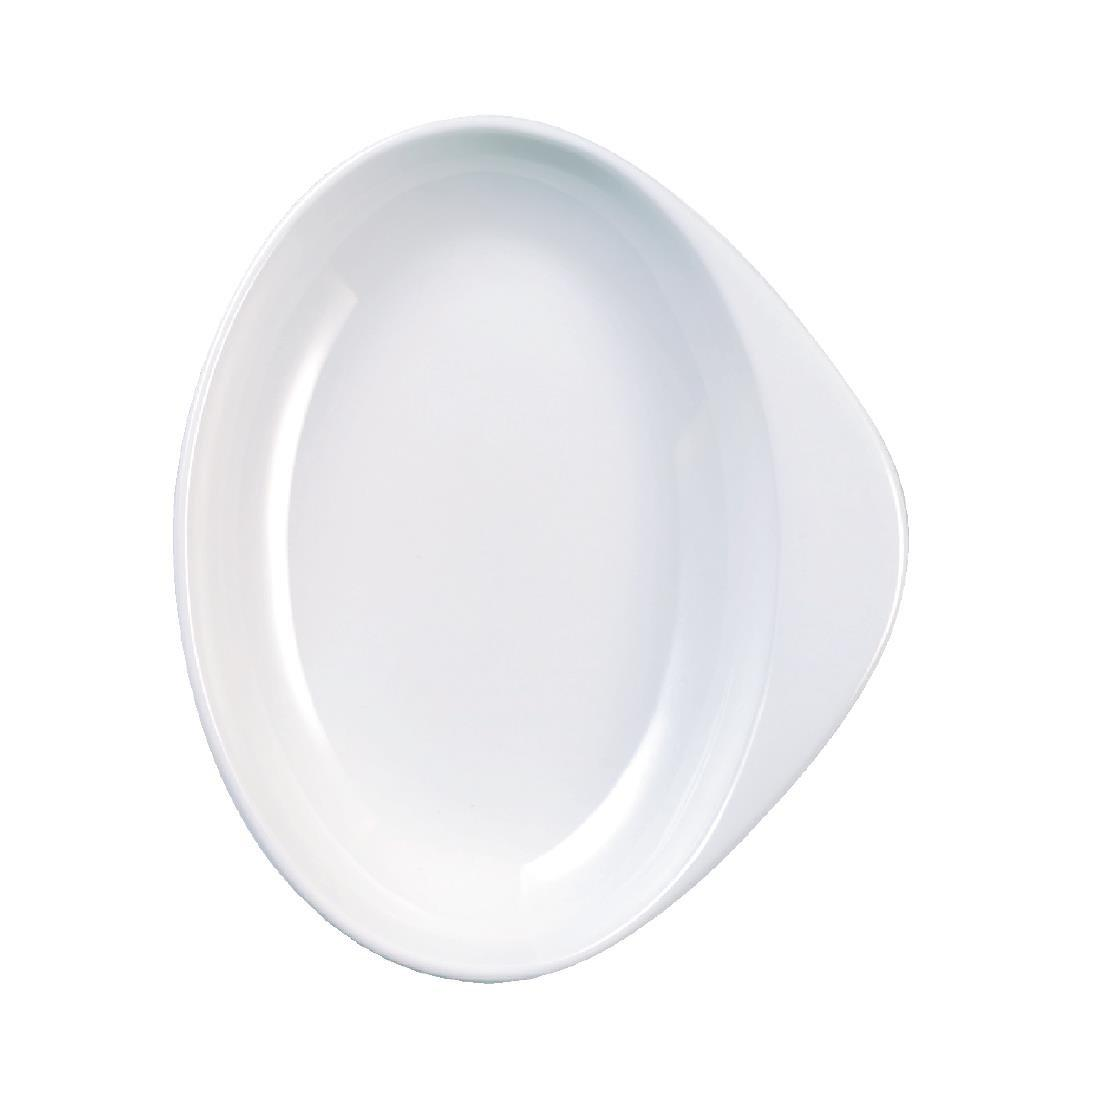 W584 - Alchemy Cook & Serve Oval Dish